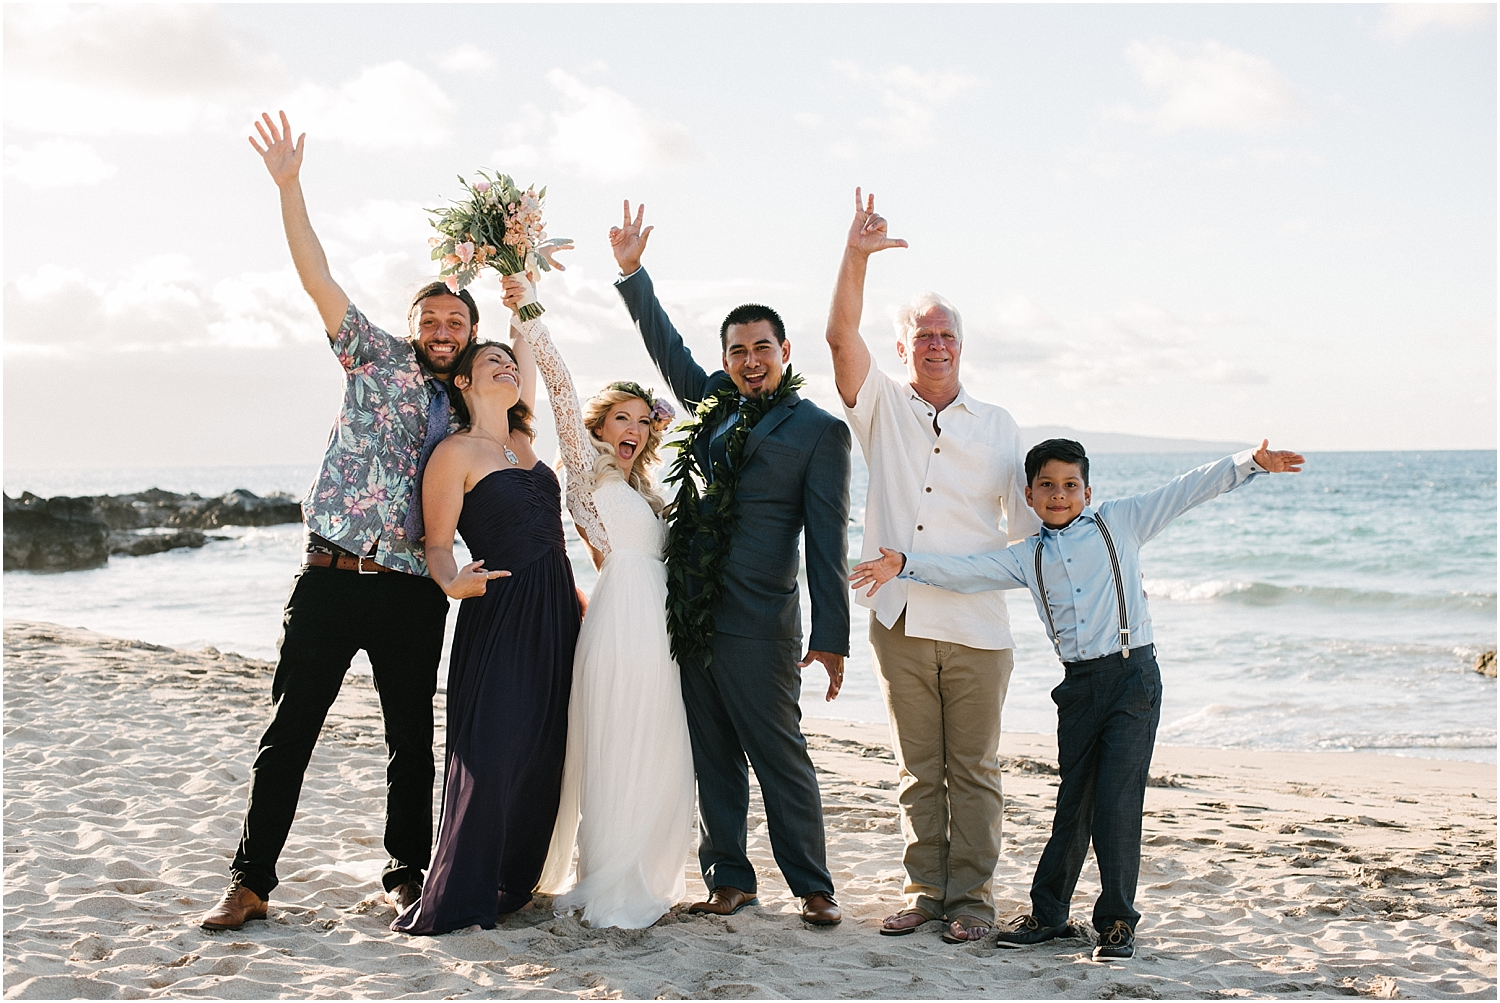 Maui Elopement by Naomi Levit Photography at Ironwoods Beach in Kapalua, Hawaii